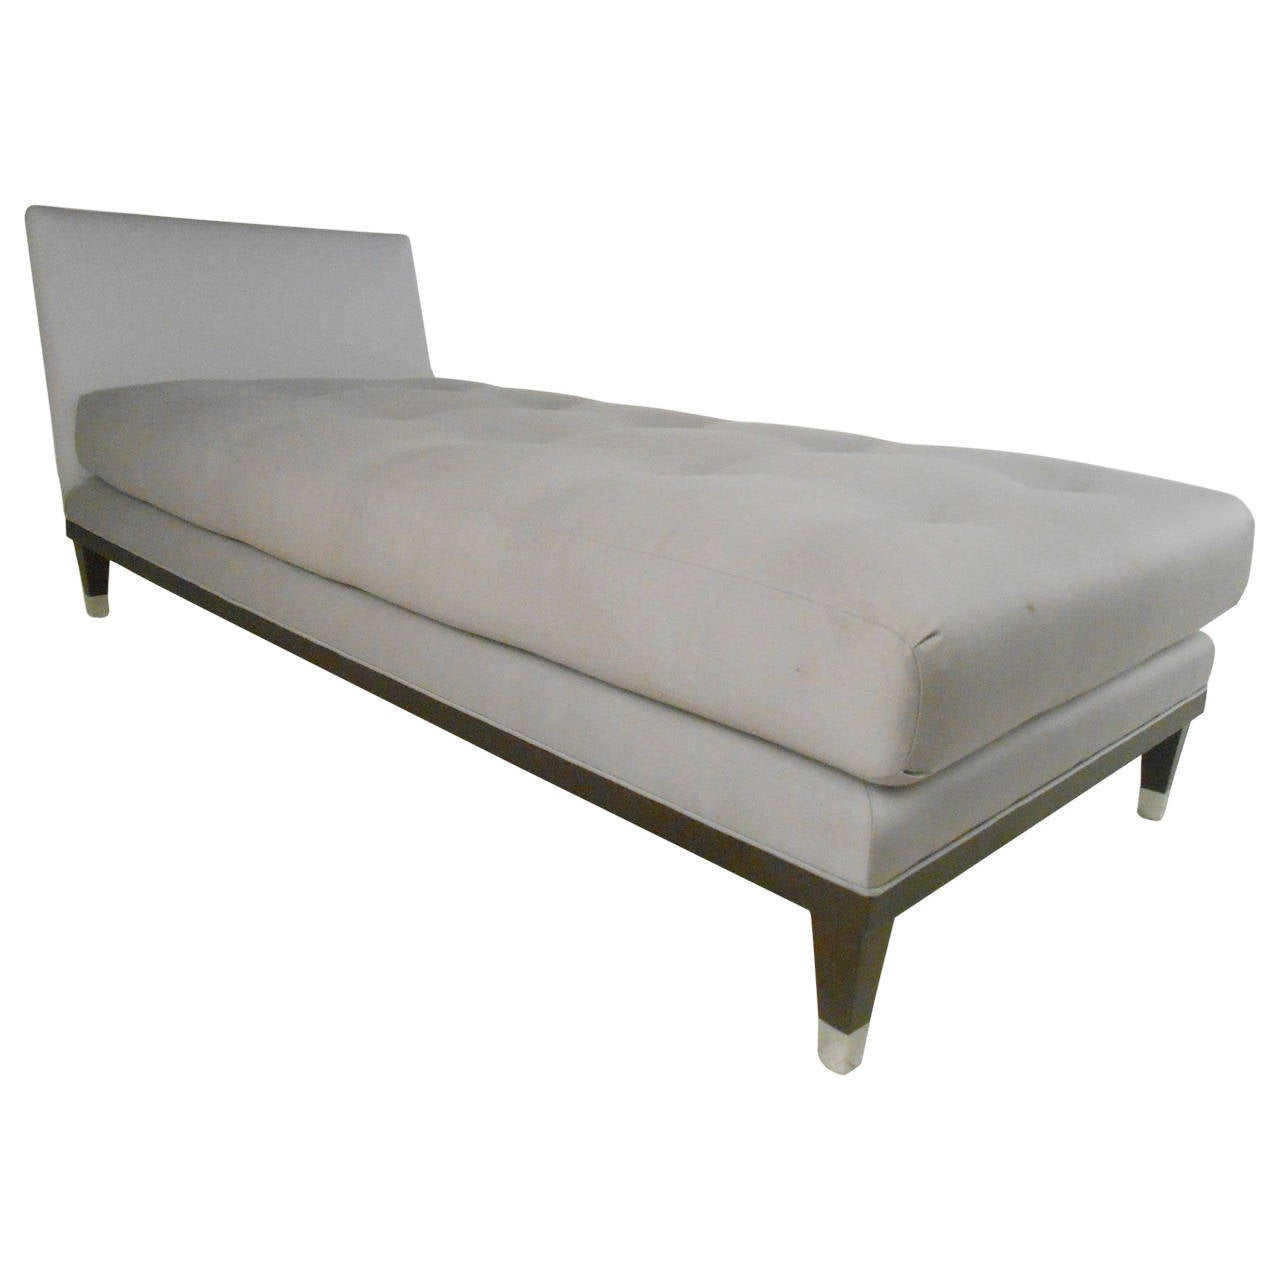 Contemporary chaise lounge contemporary barcelona style for Chaise longue moderne